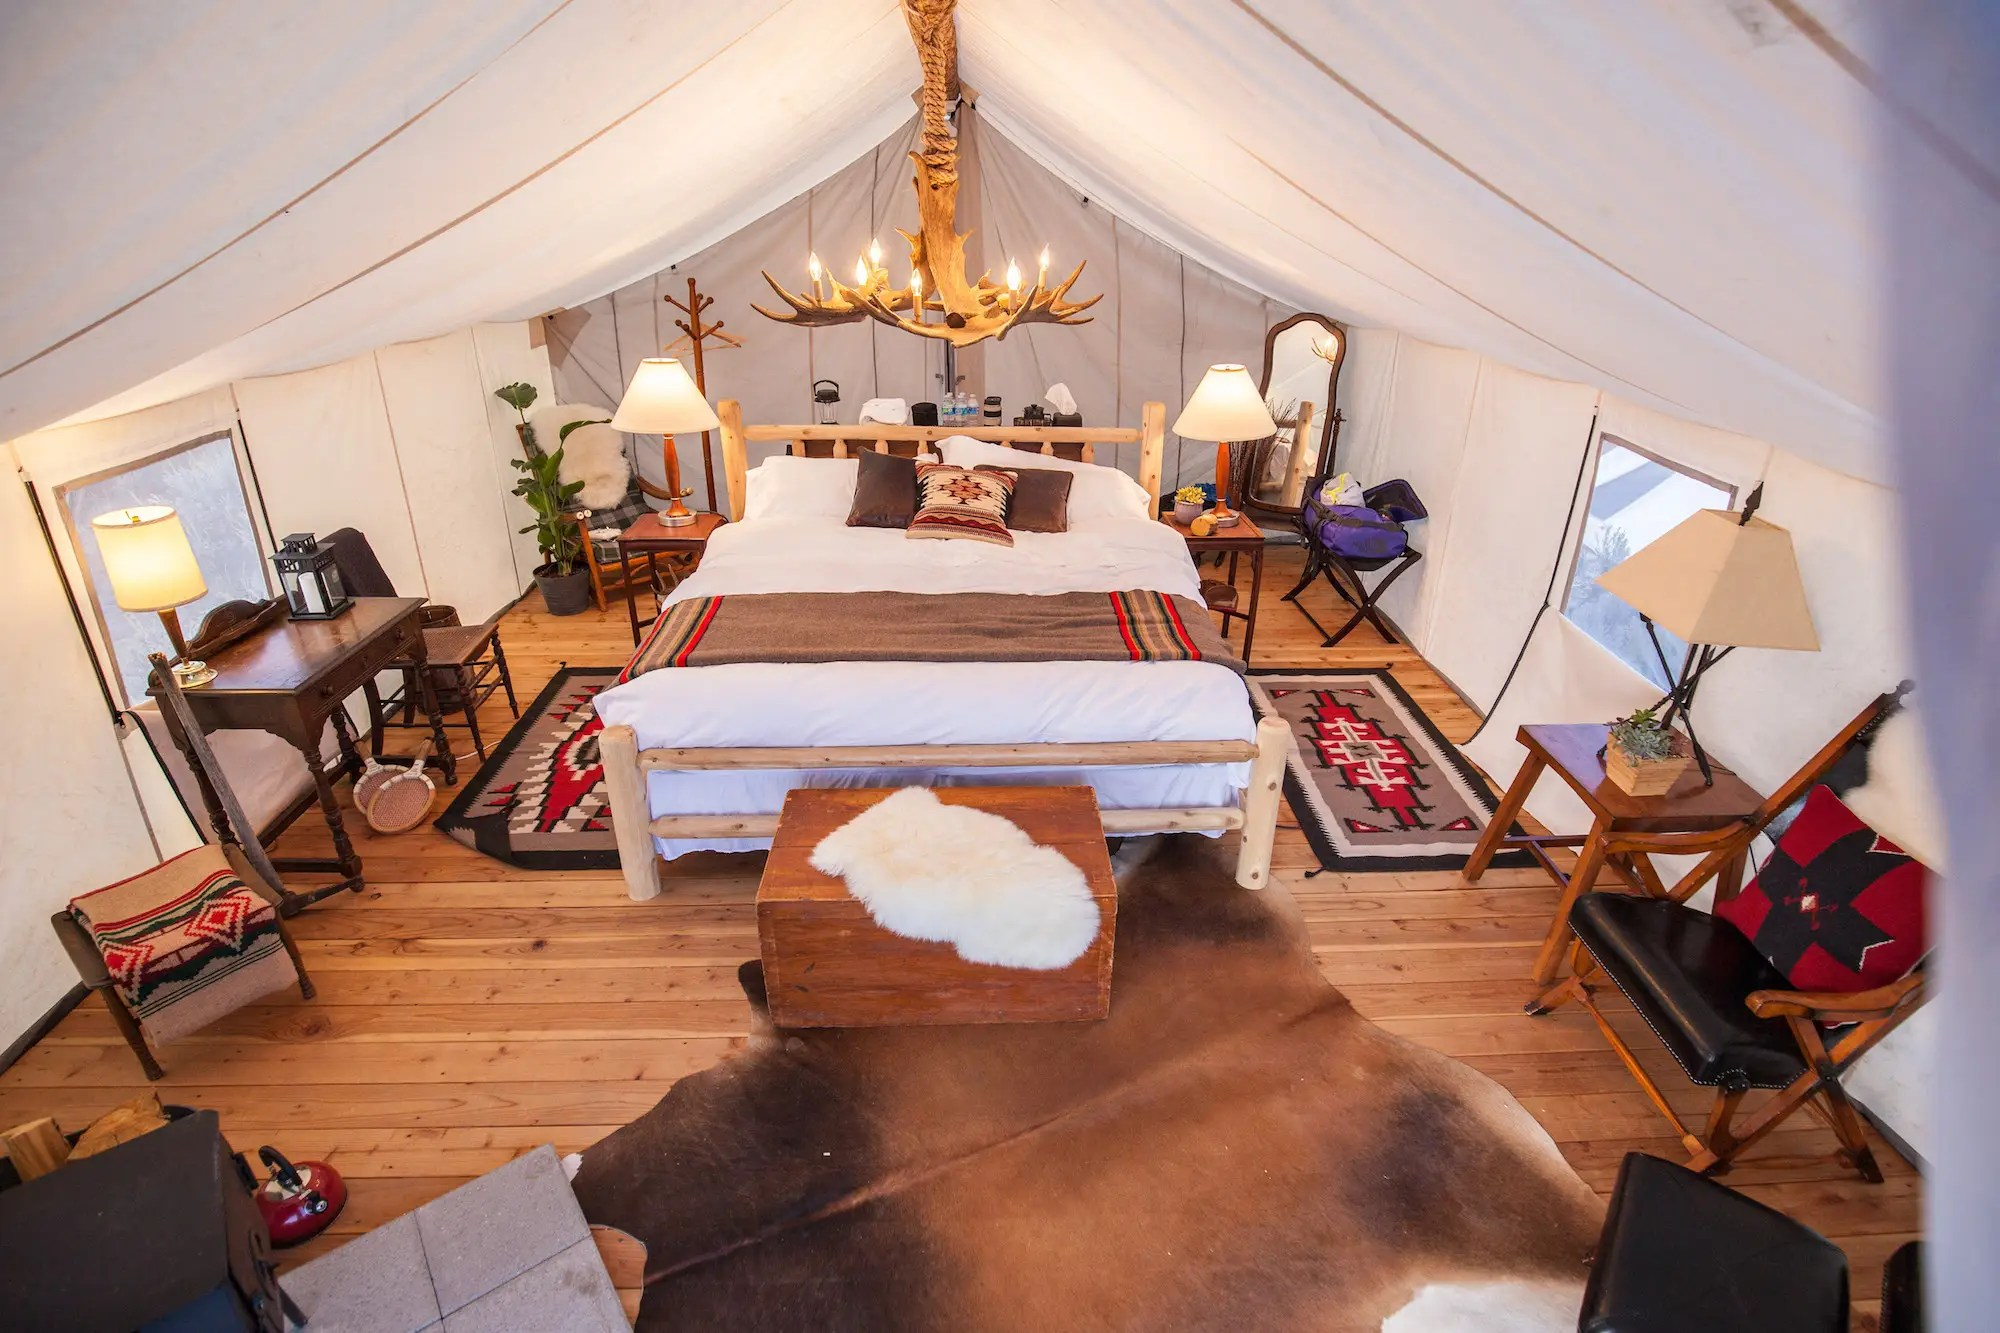 The average nightly rate is $144, which is three times more than the industry average. But it's a steal compared to upscale glamping startup Collective Retreats, which charges between $500 and $700 a night.